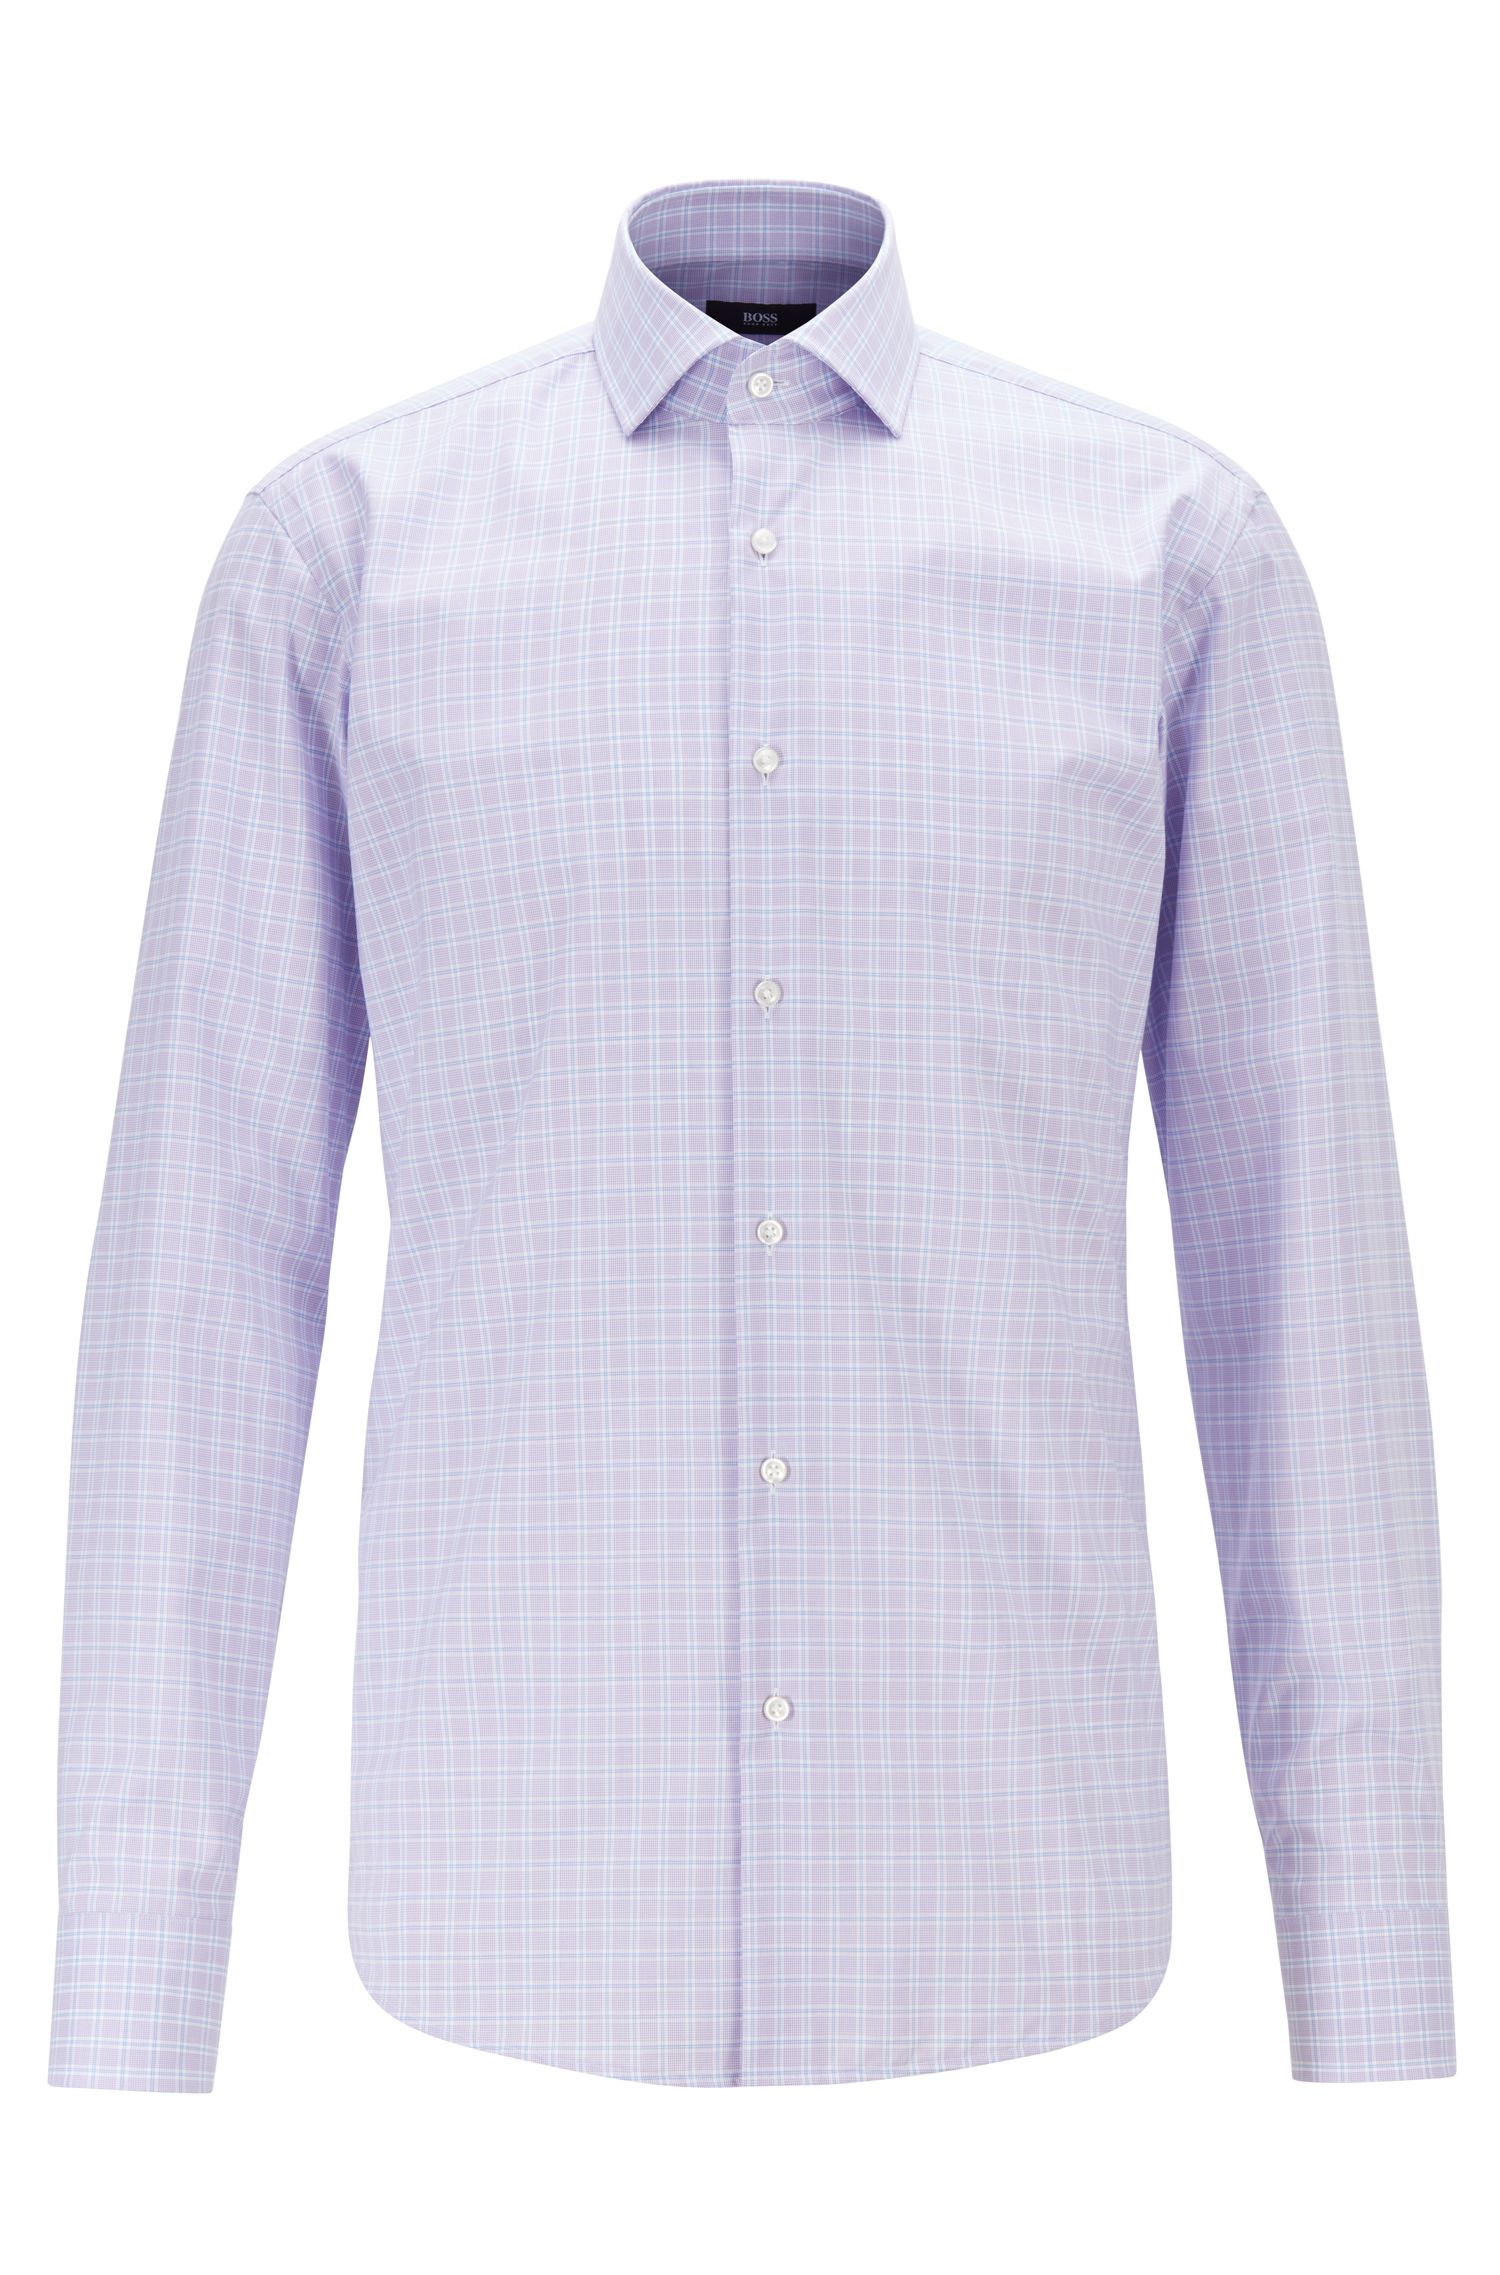 Camicia regular fit in popeline di cotone a quadri facile da stirare, Lilla